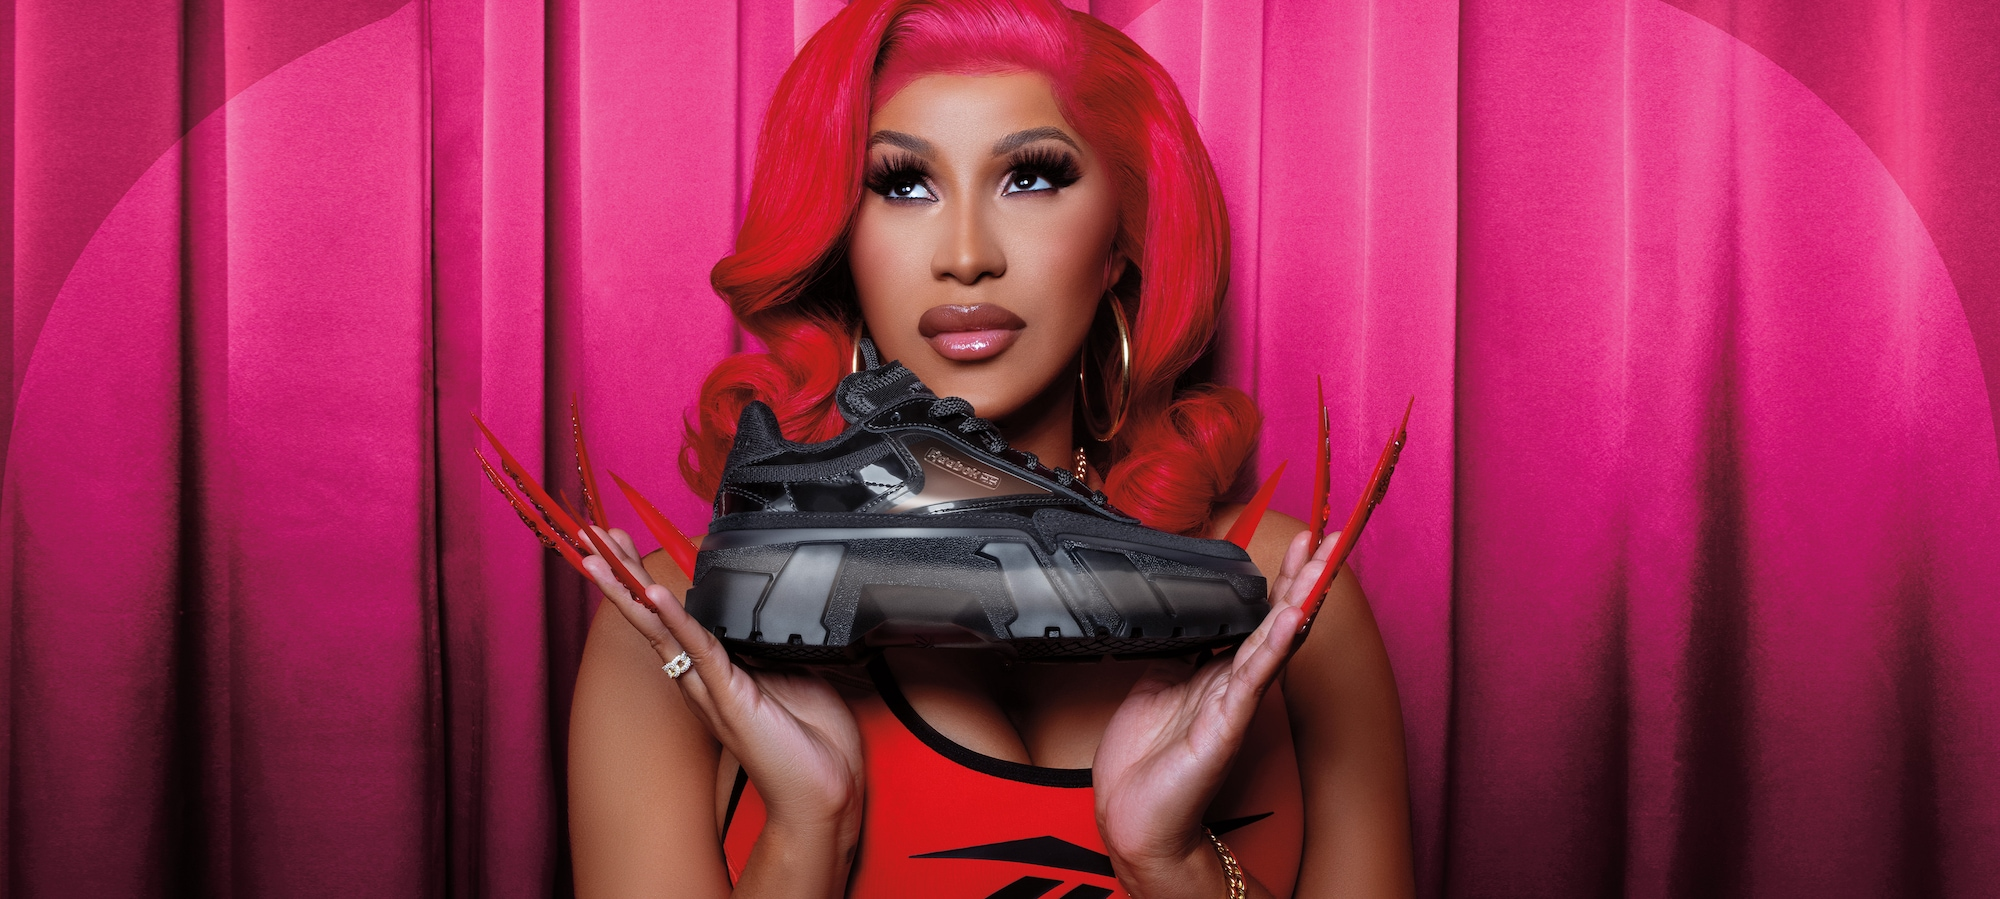 cardi-b-has-the-perfect-response-to-conservative-comedian-claiming-wap-is-more-read-in-schools-than-dr-seuss-books